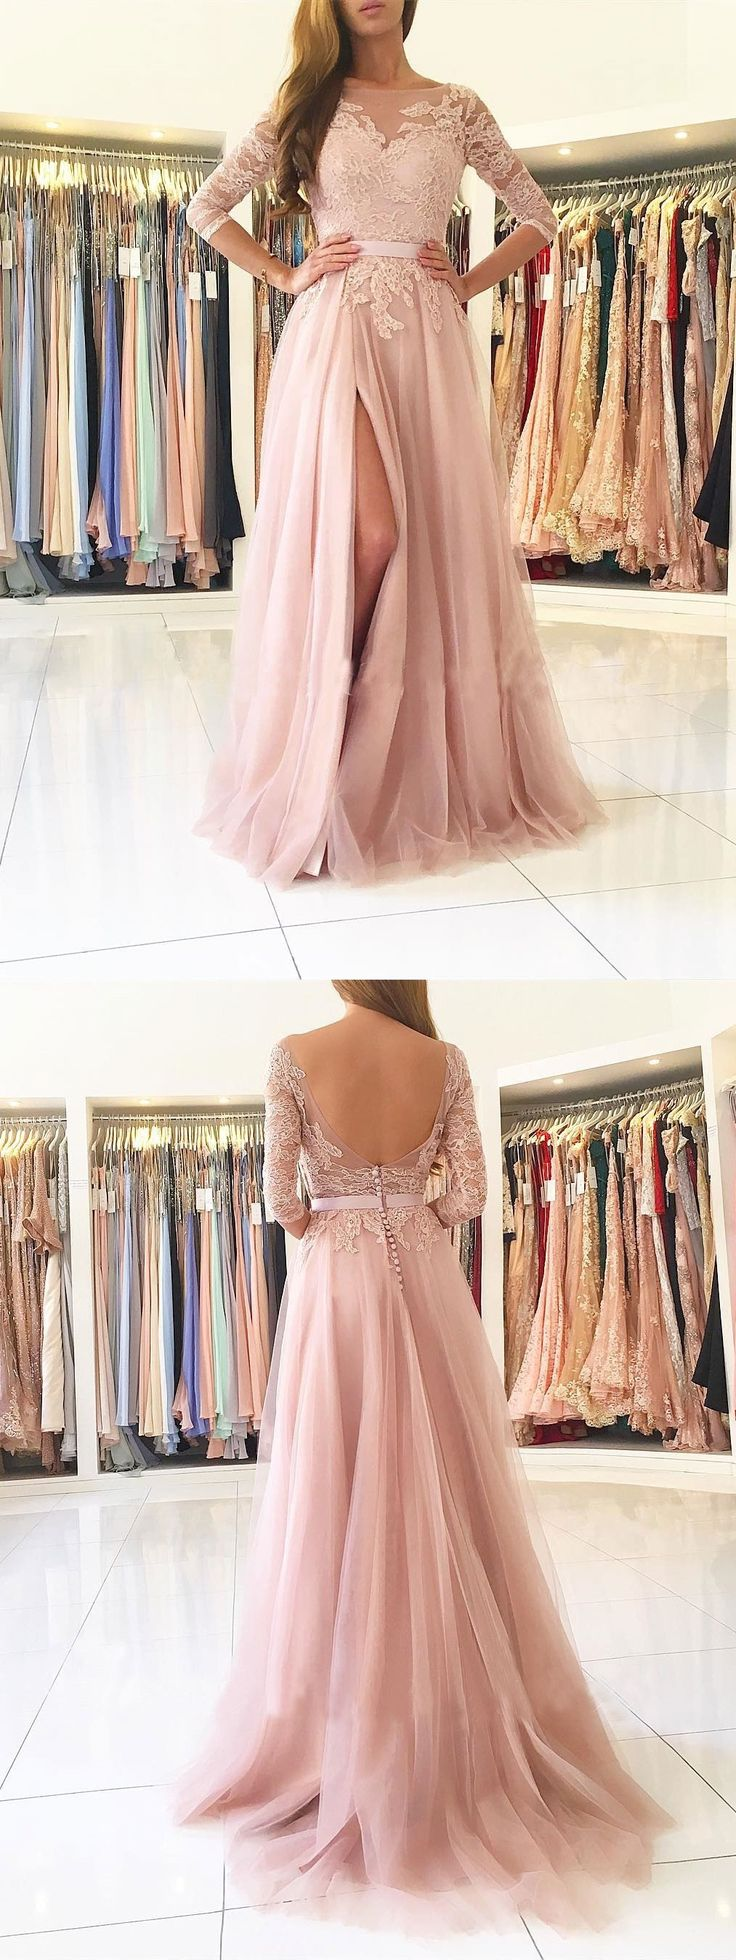 Long prom dresses with half sleeves,lace prom dresses,long bridesmaid dresses,nude prom dresses,long formal dresses